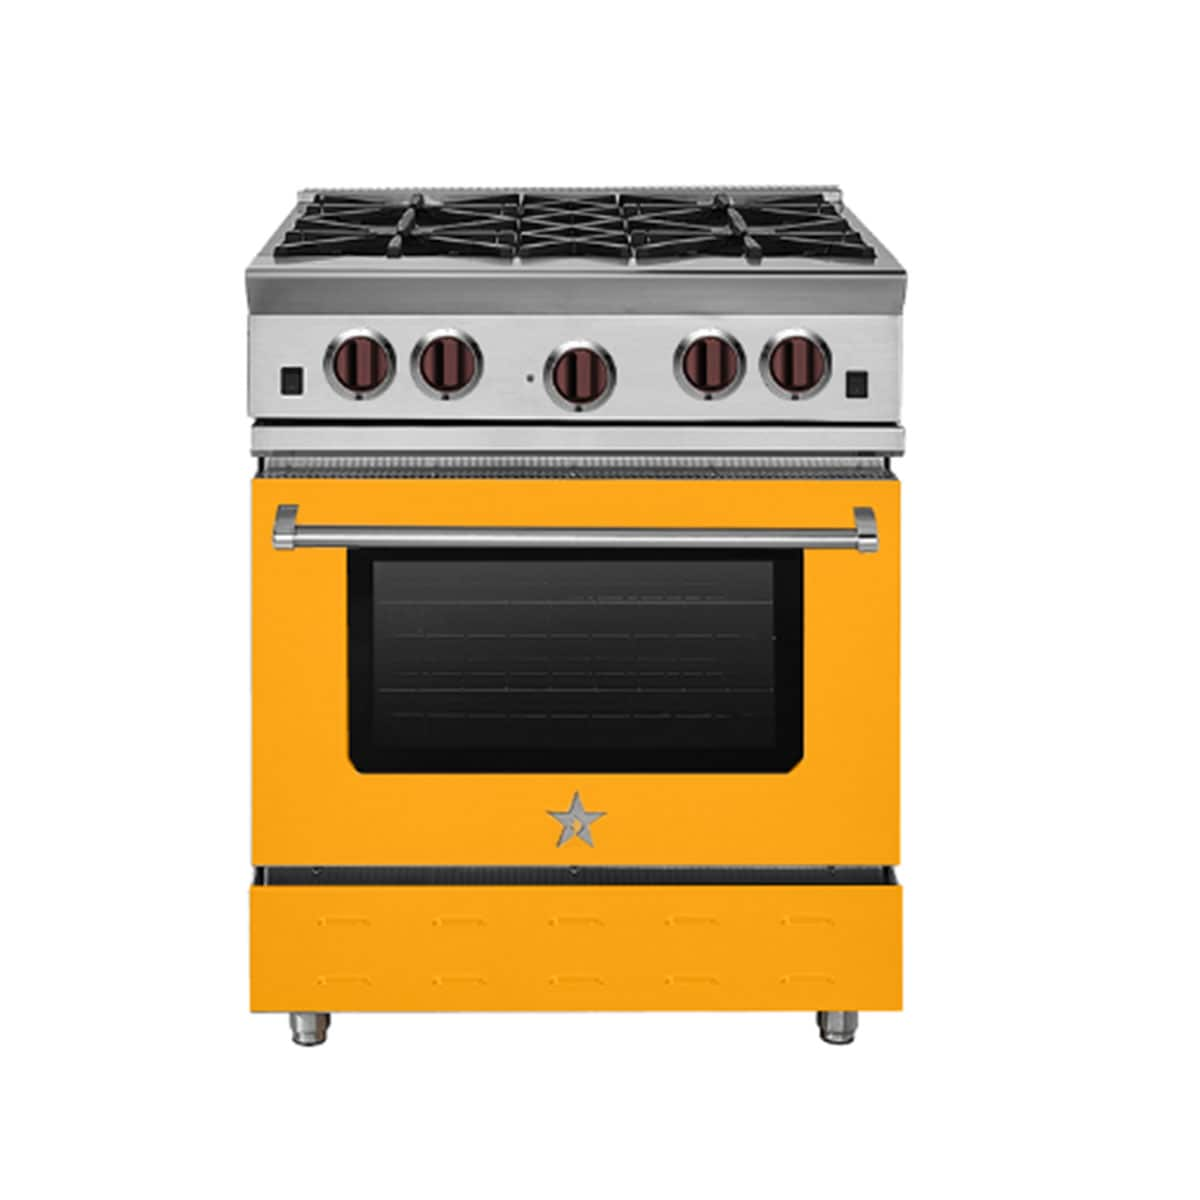 Beyond Smeg: 10 Colorful Appliances to Brighten Up Your Kitchen: gallery image 10